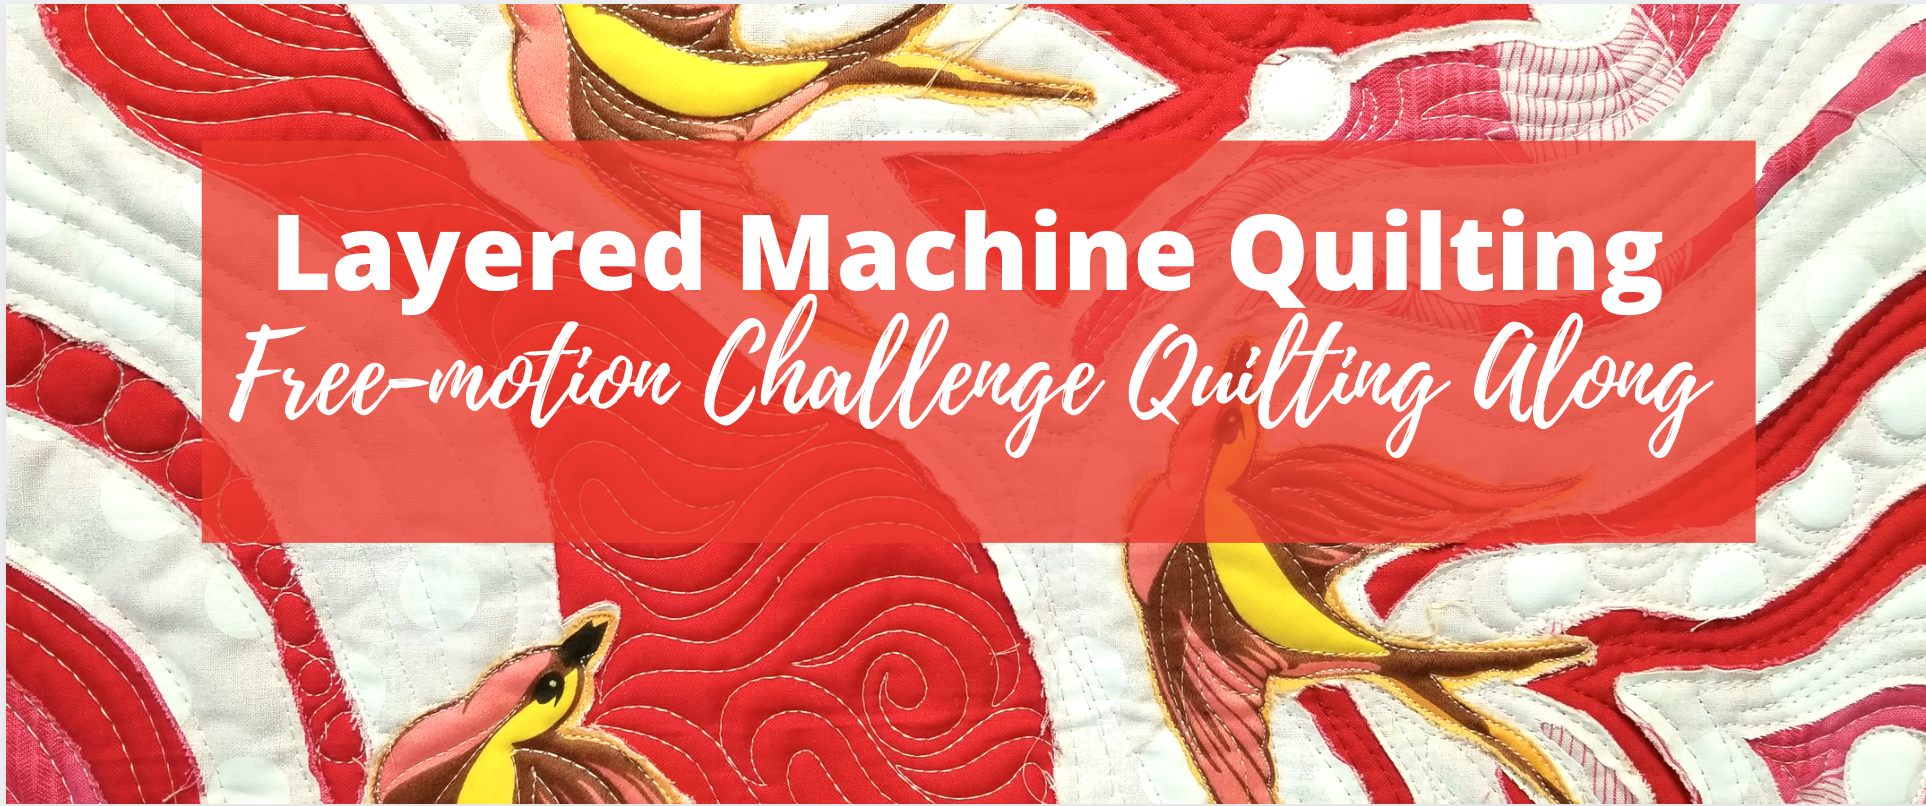 layered free-motion challenge quilting along